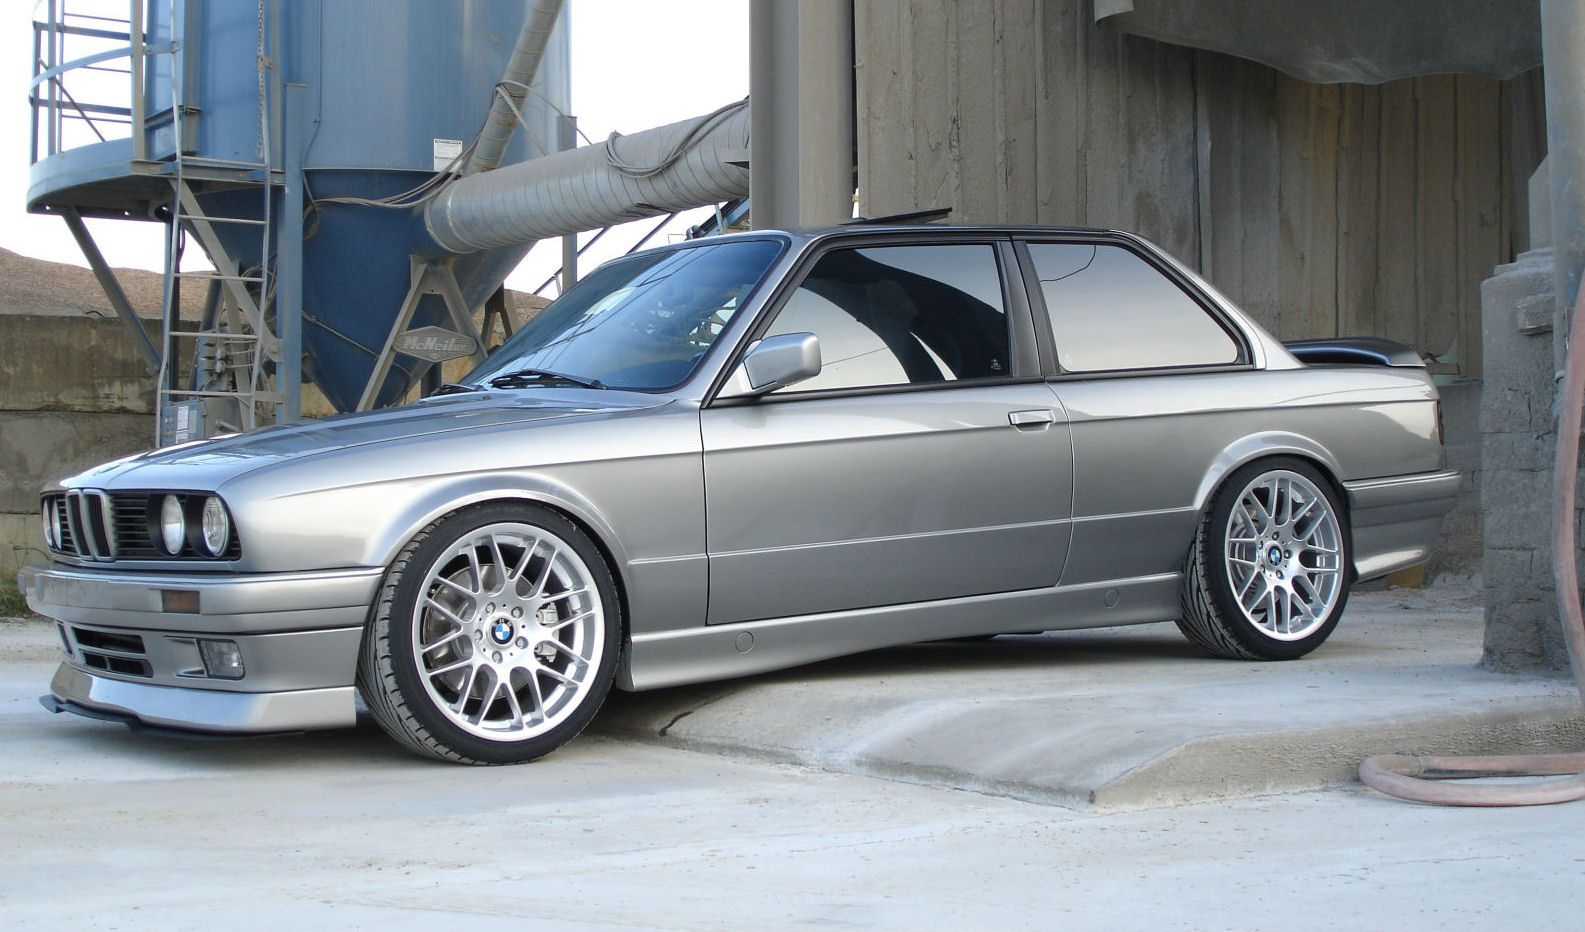 Modified E Bimmerfest BMW Forums Drive Tastefully - Bmw 325i m3